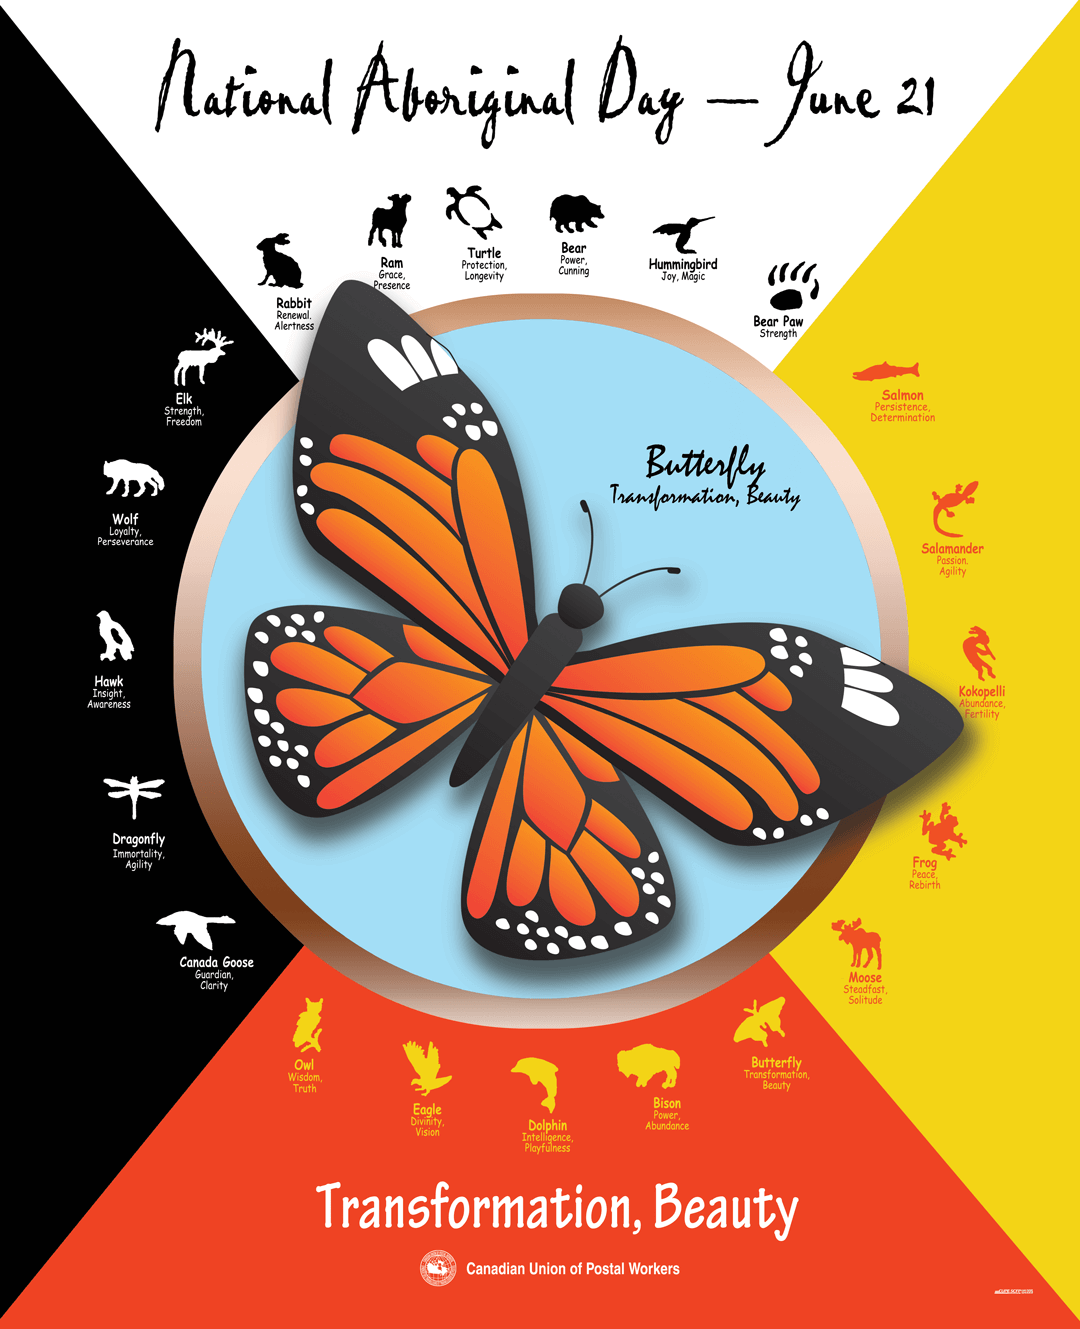 June 21, 2015: National Aboriginal Day (Butterfly)